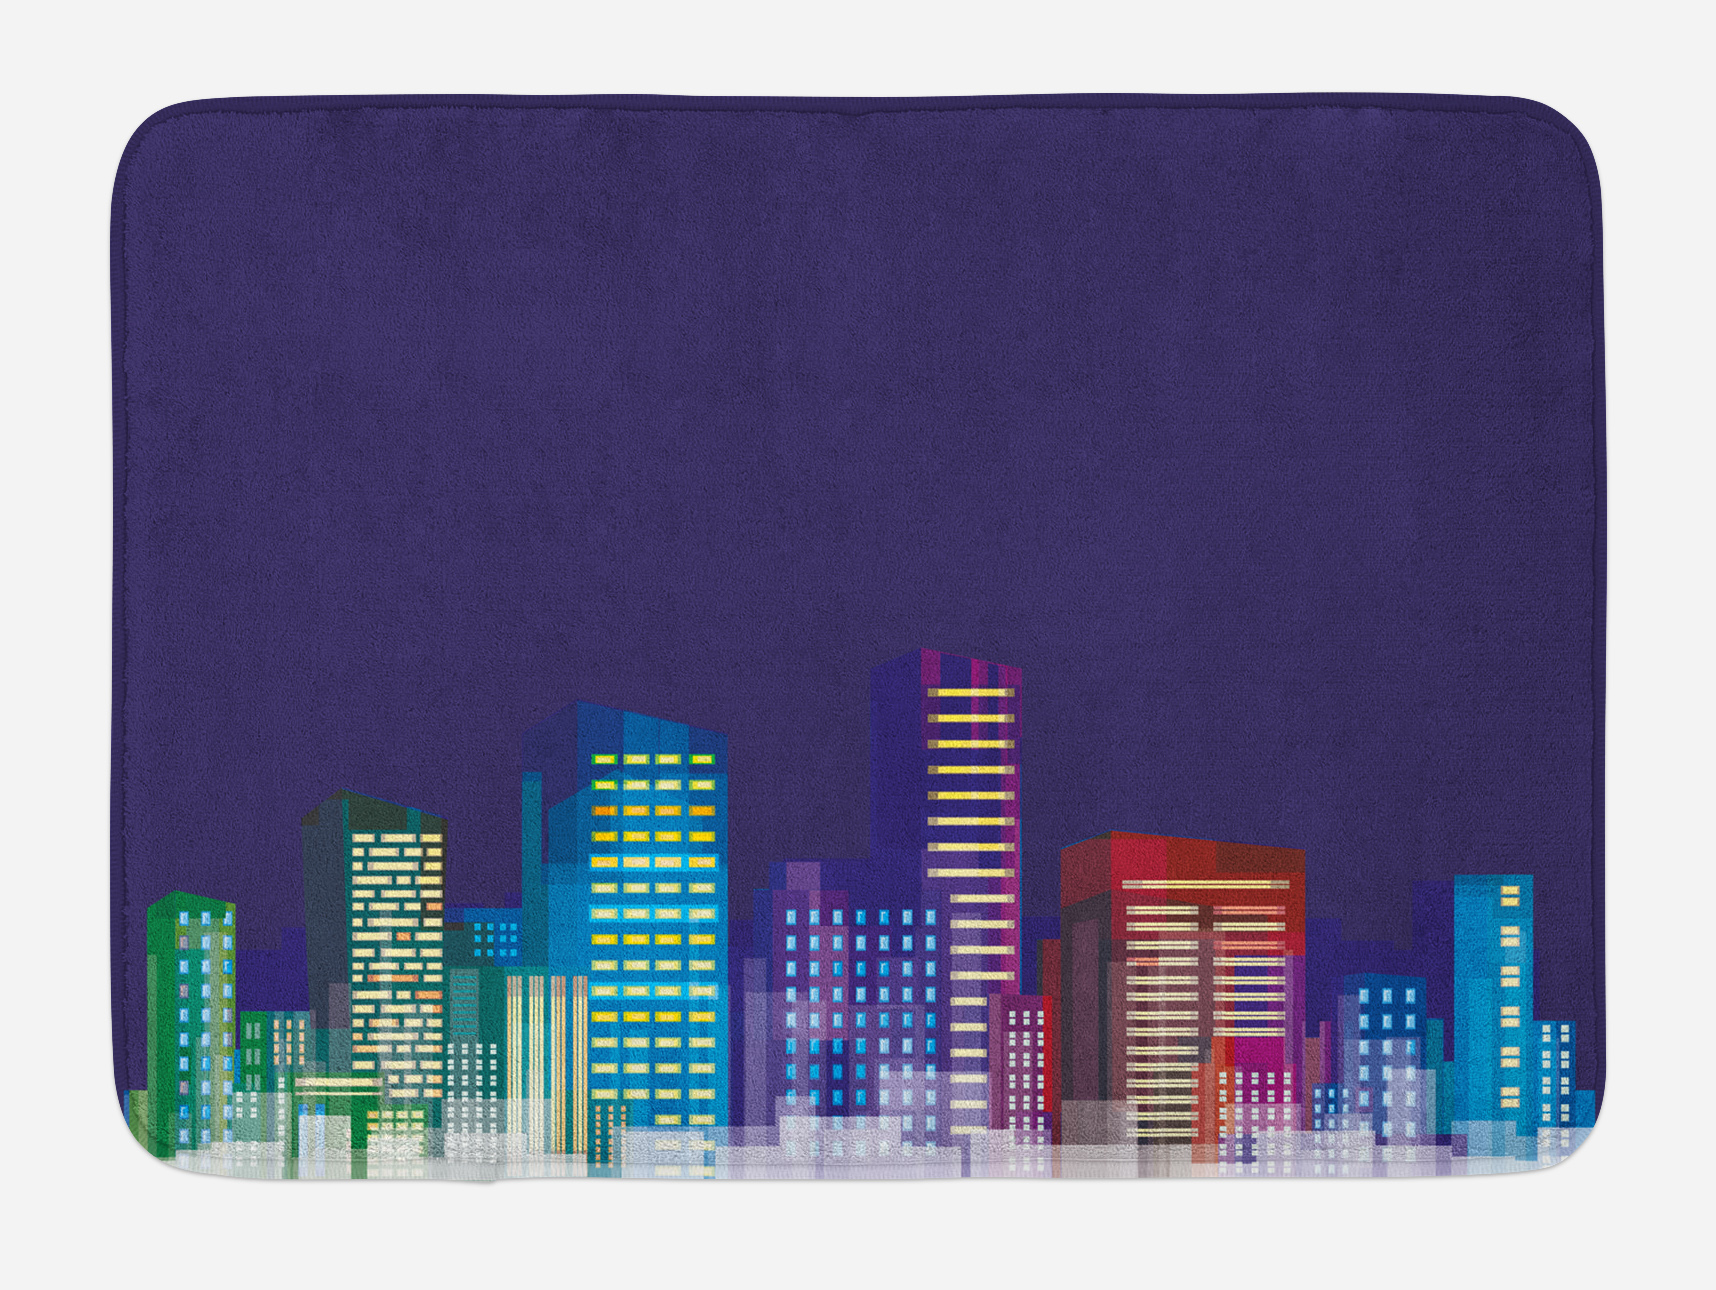 Kids Bath Mat, Cartoon Print of City Scenery Landscape of Apartments and Buildings Artwork... by 3decor llc